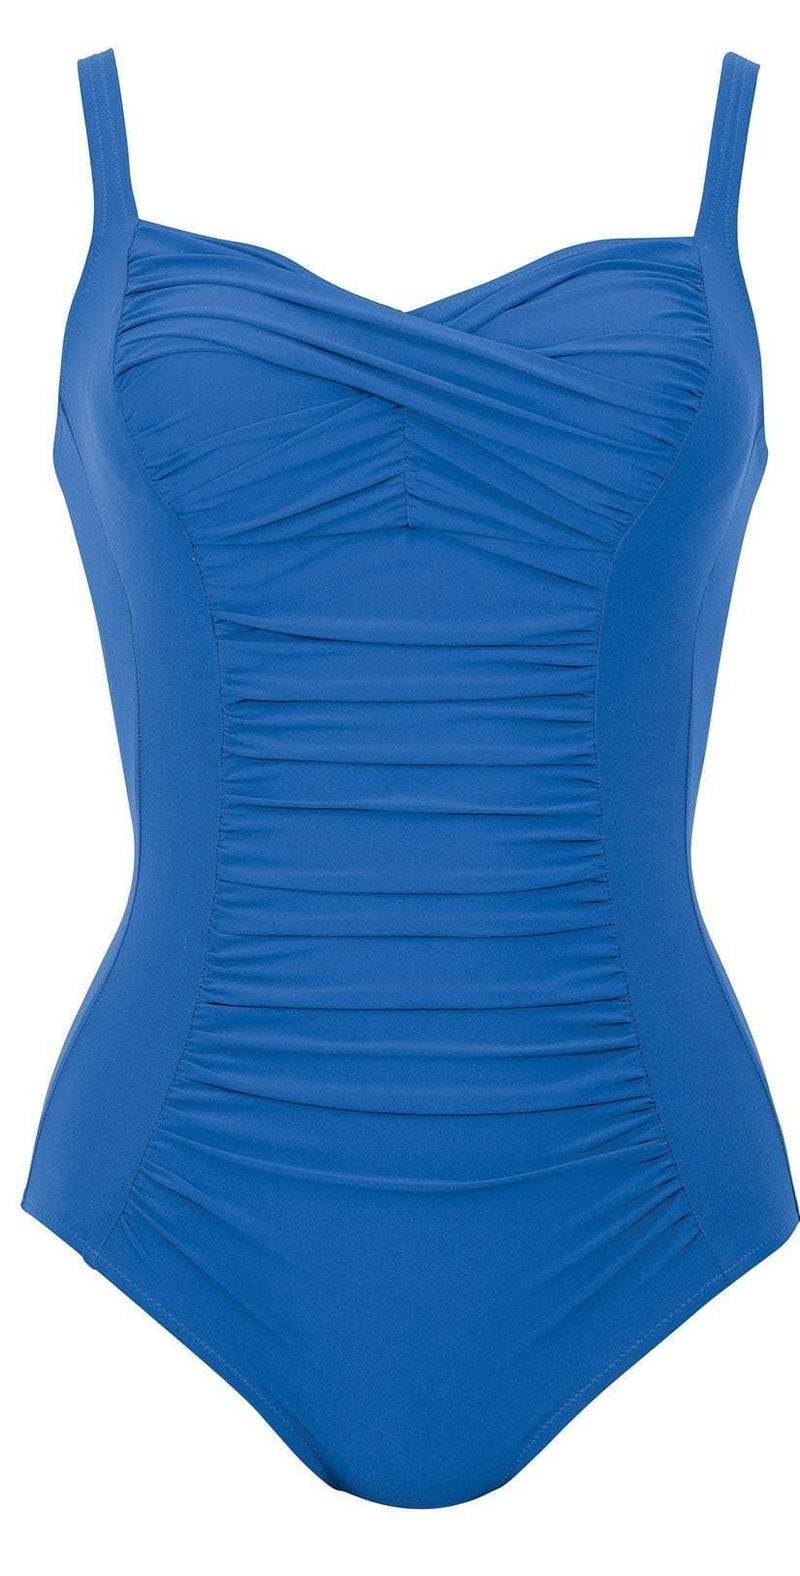 Anita Comfort Michelle One Piece Swimsuit in Blue 7370-354: